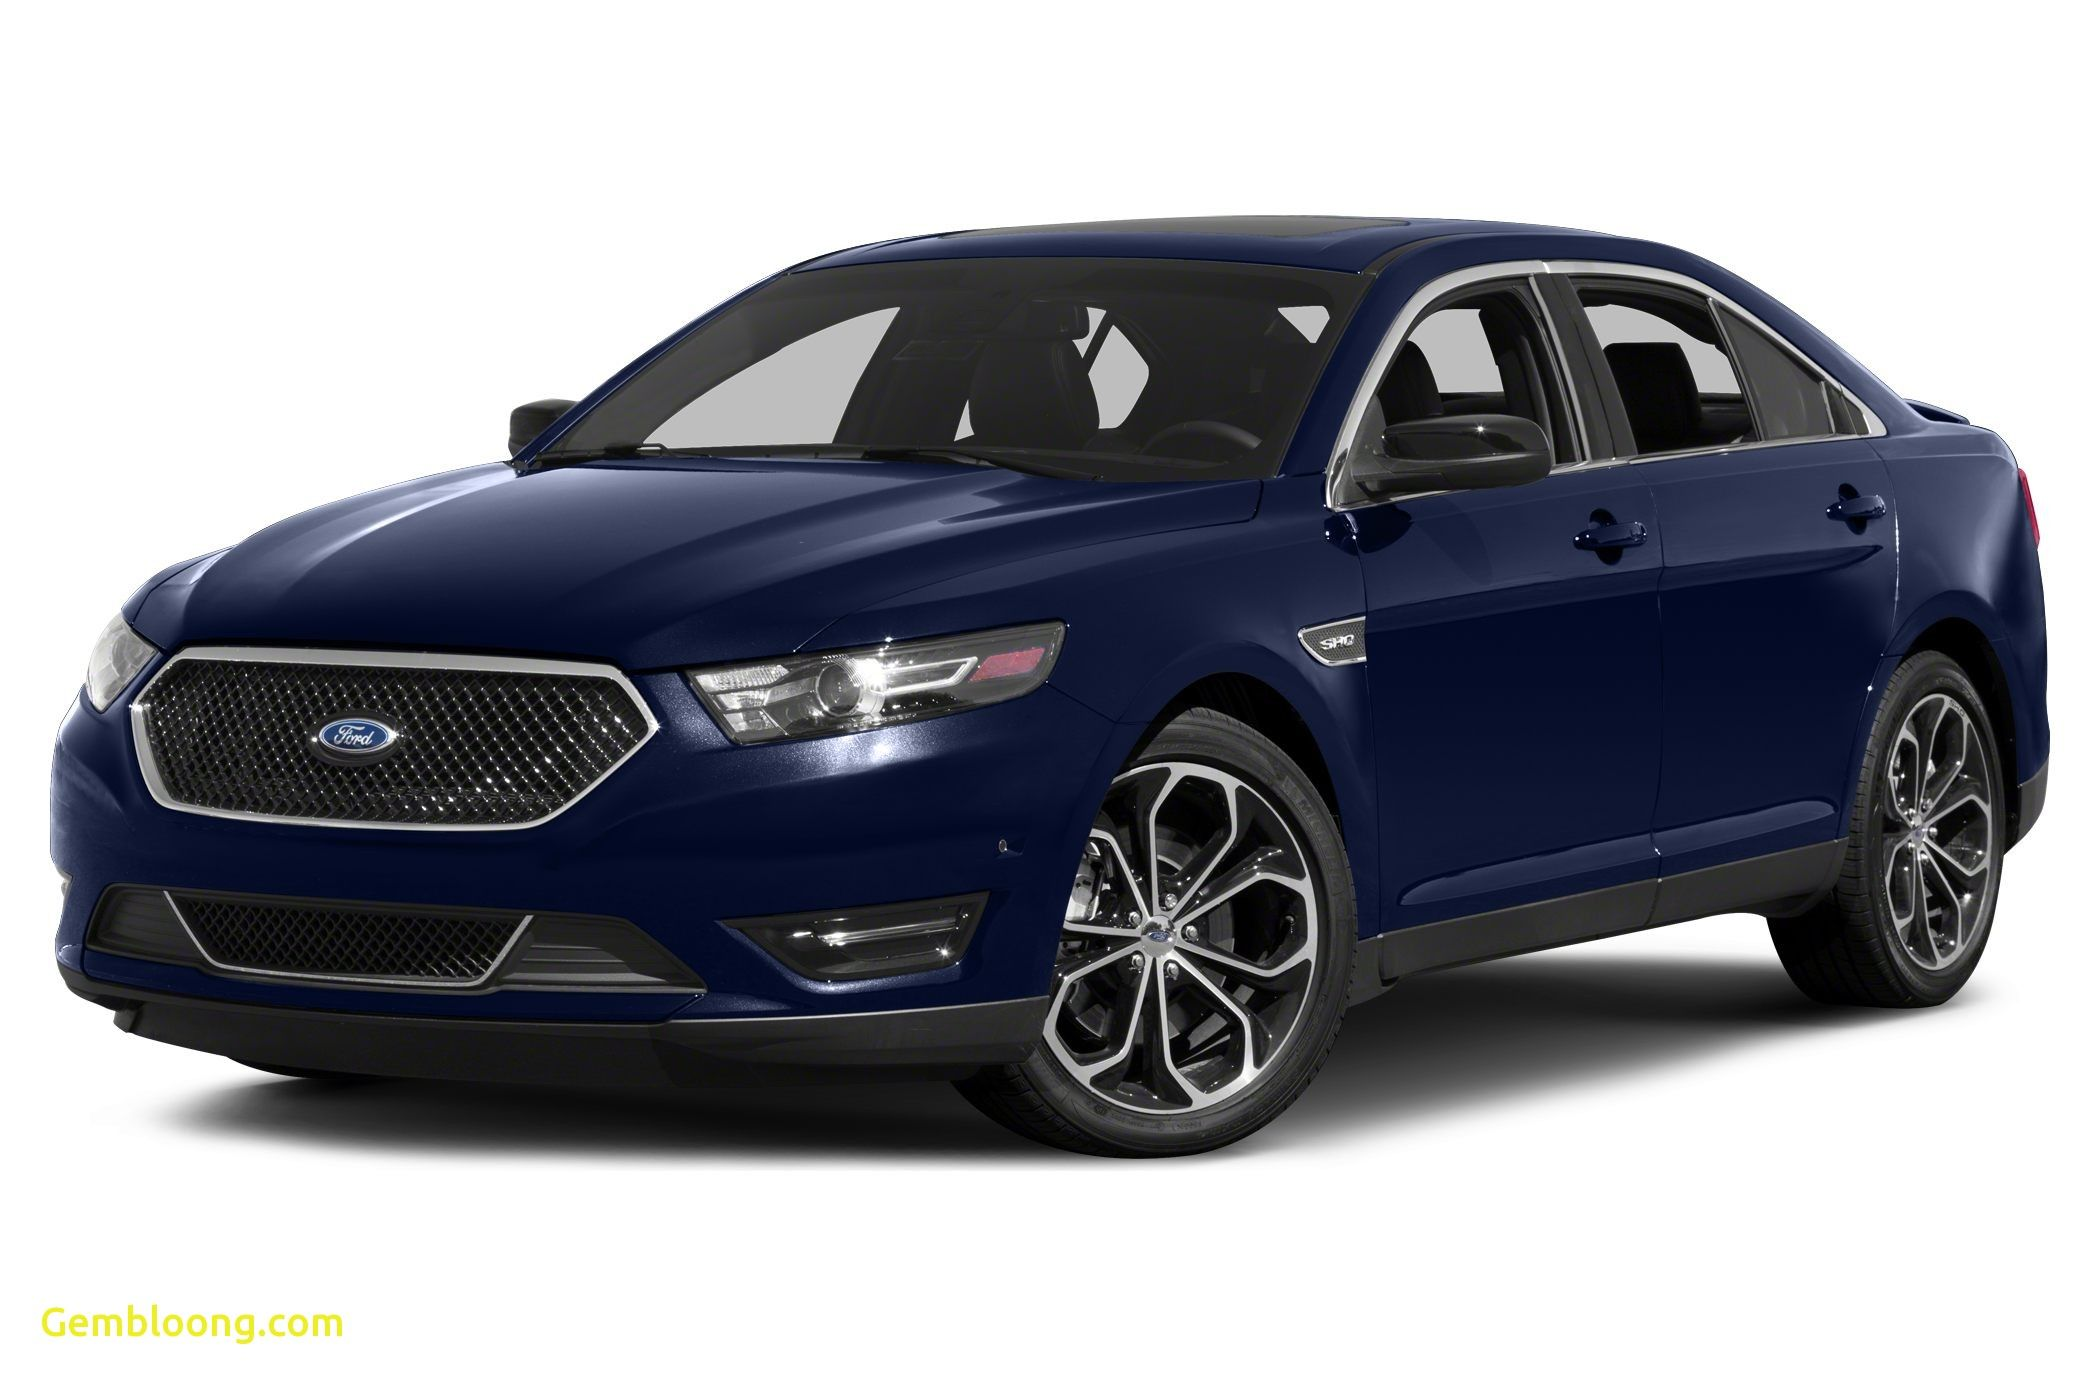 New Cheap Used Cars for Sale Near Me Under 3000 Automotive